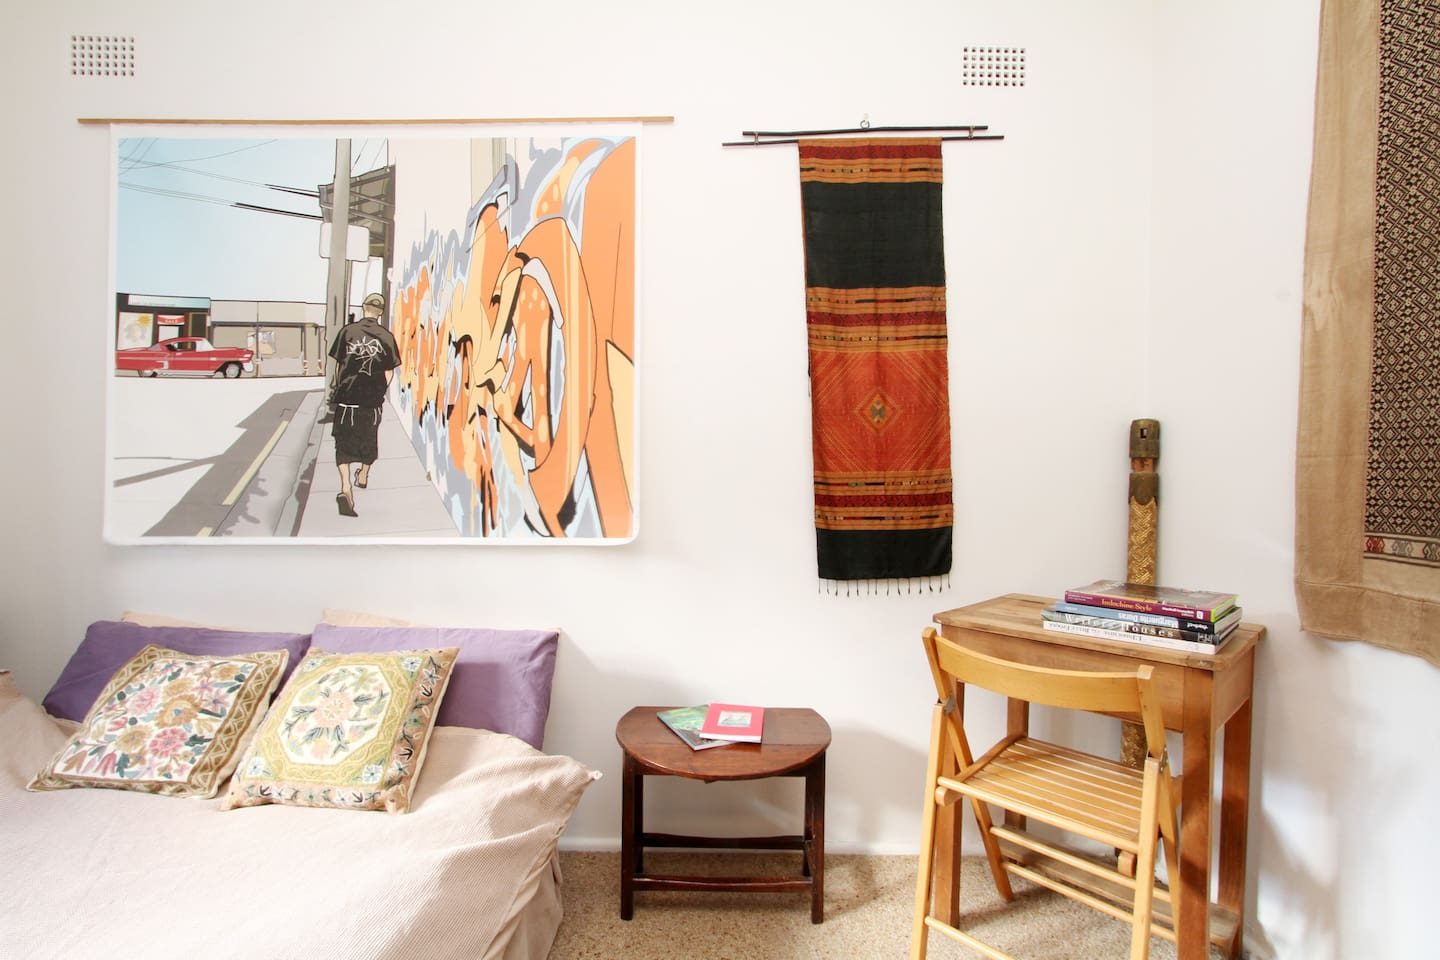 Your comfy bedroom, decorated with local art and wall hangings from my travels.